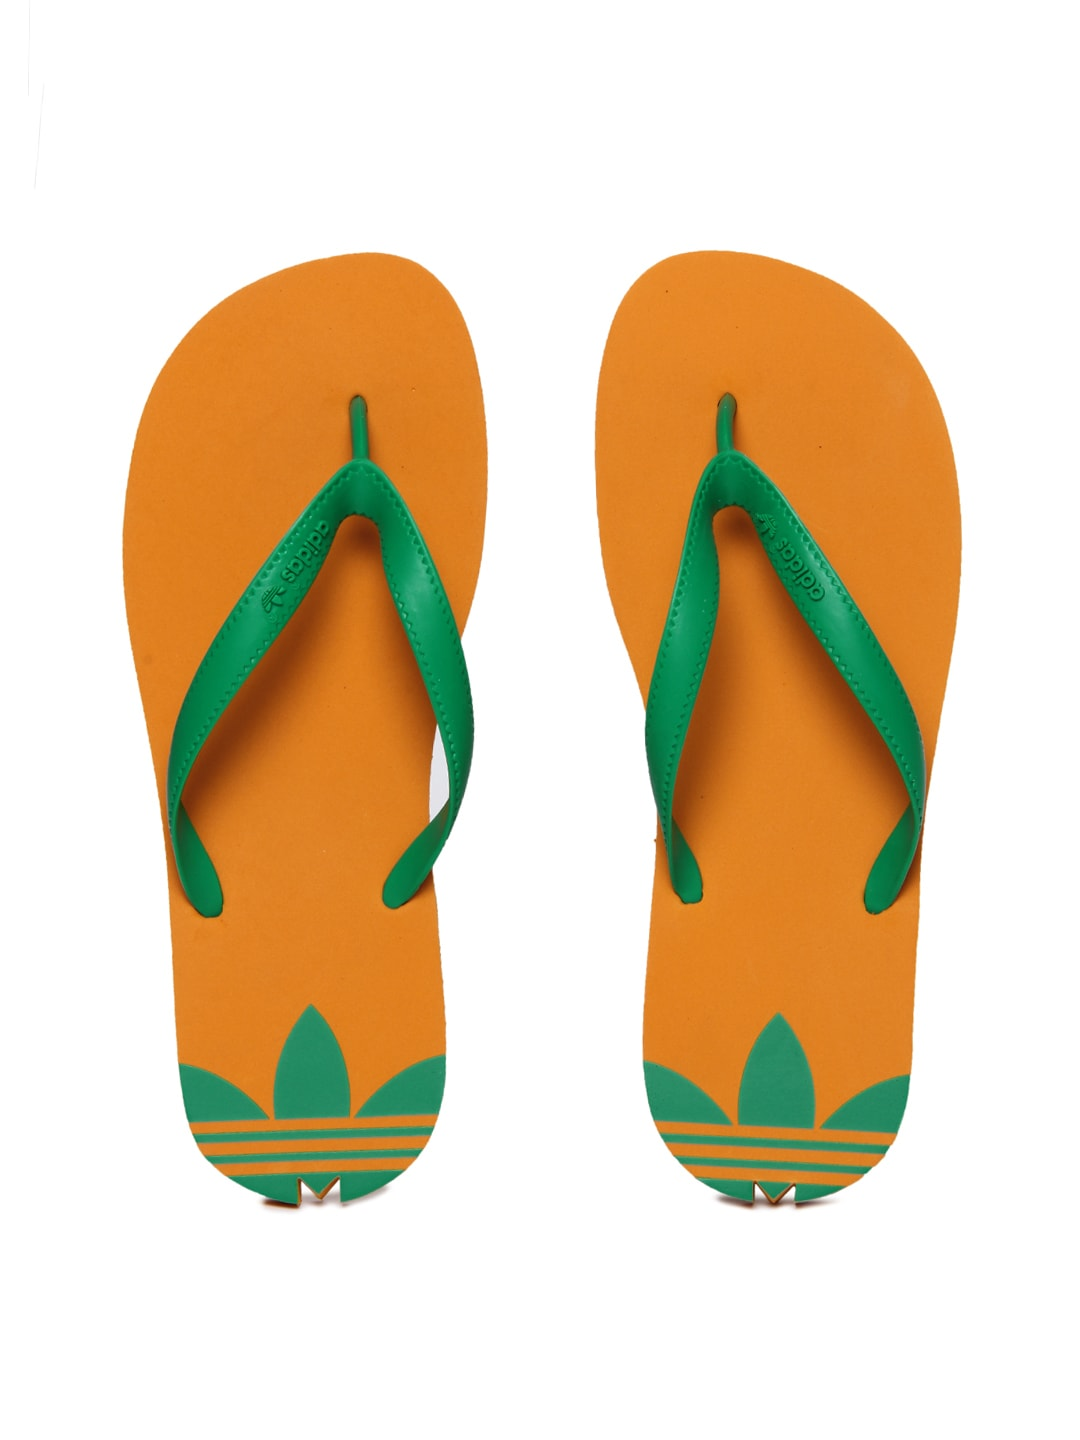 09754f3f9 Adidas d65629 Originals Men Orange Adi Sun Flip Flops - Best Price ...